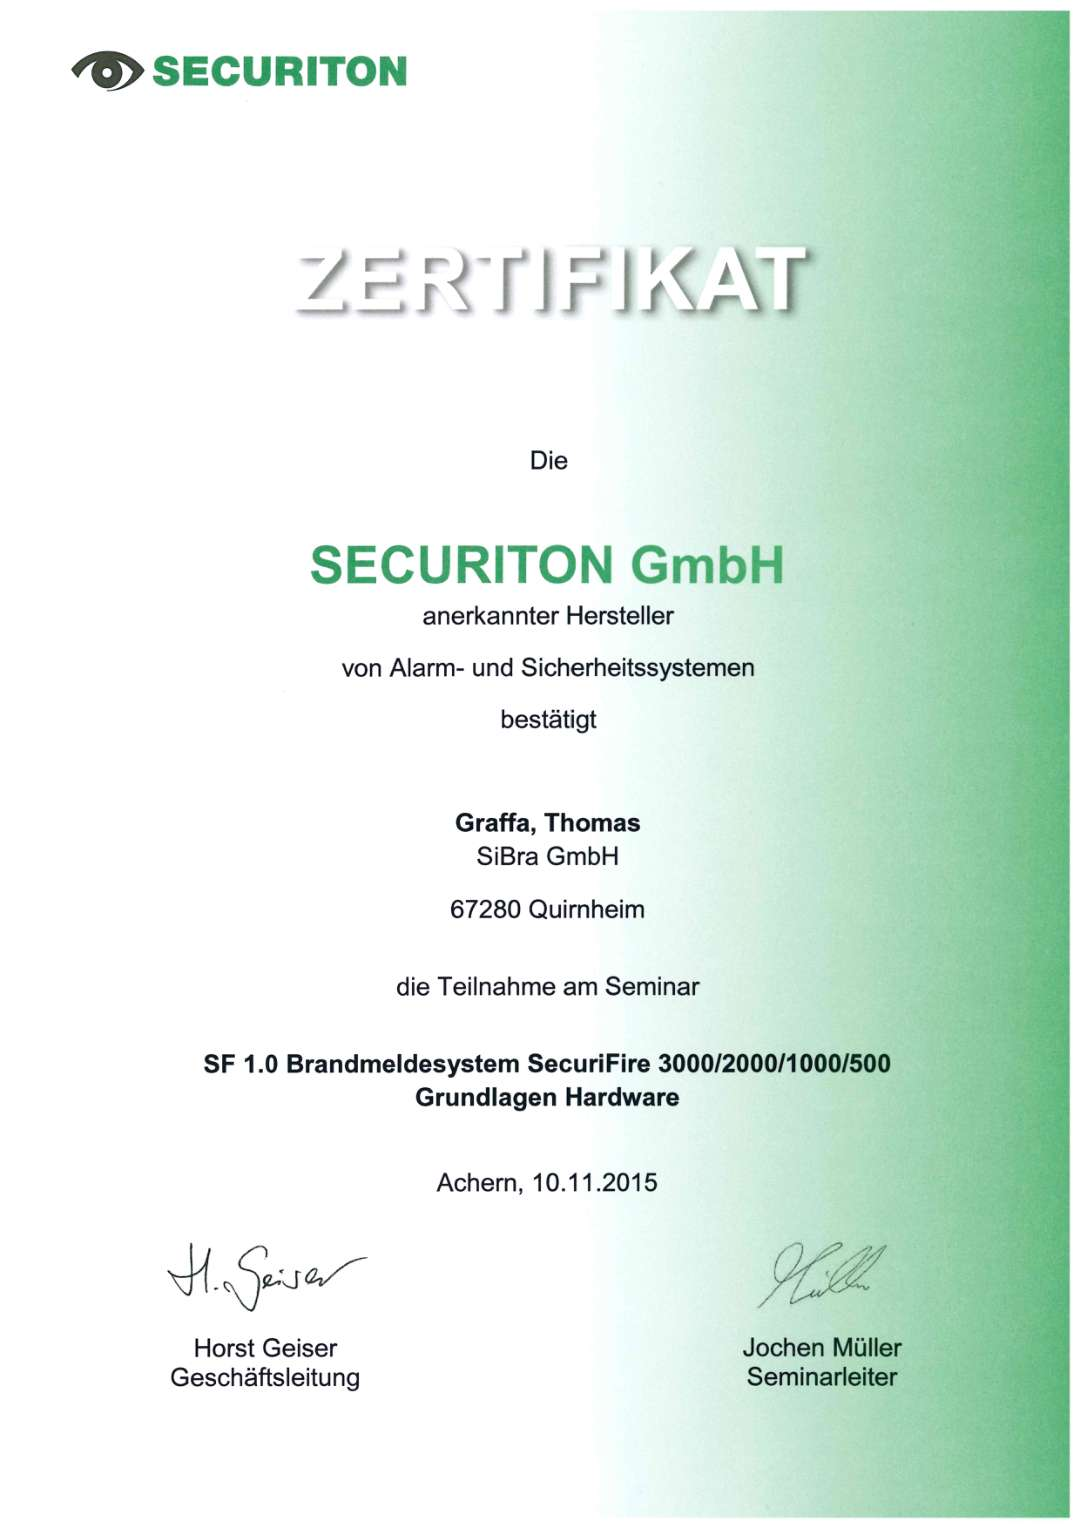 BMA I Securiton Securifire Hardware I Securiton I Zertifikat I Graffa_Thomas I 2015.11.10_1